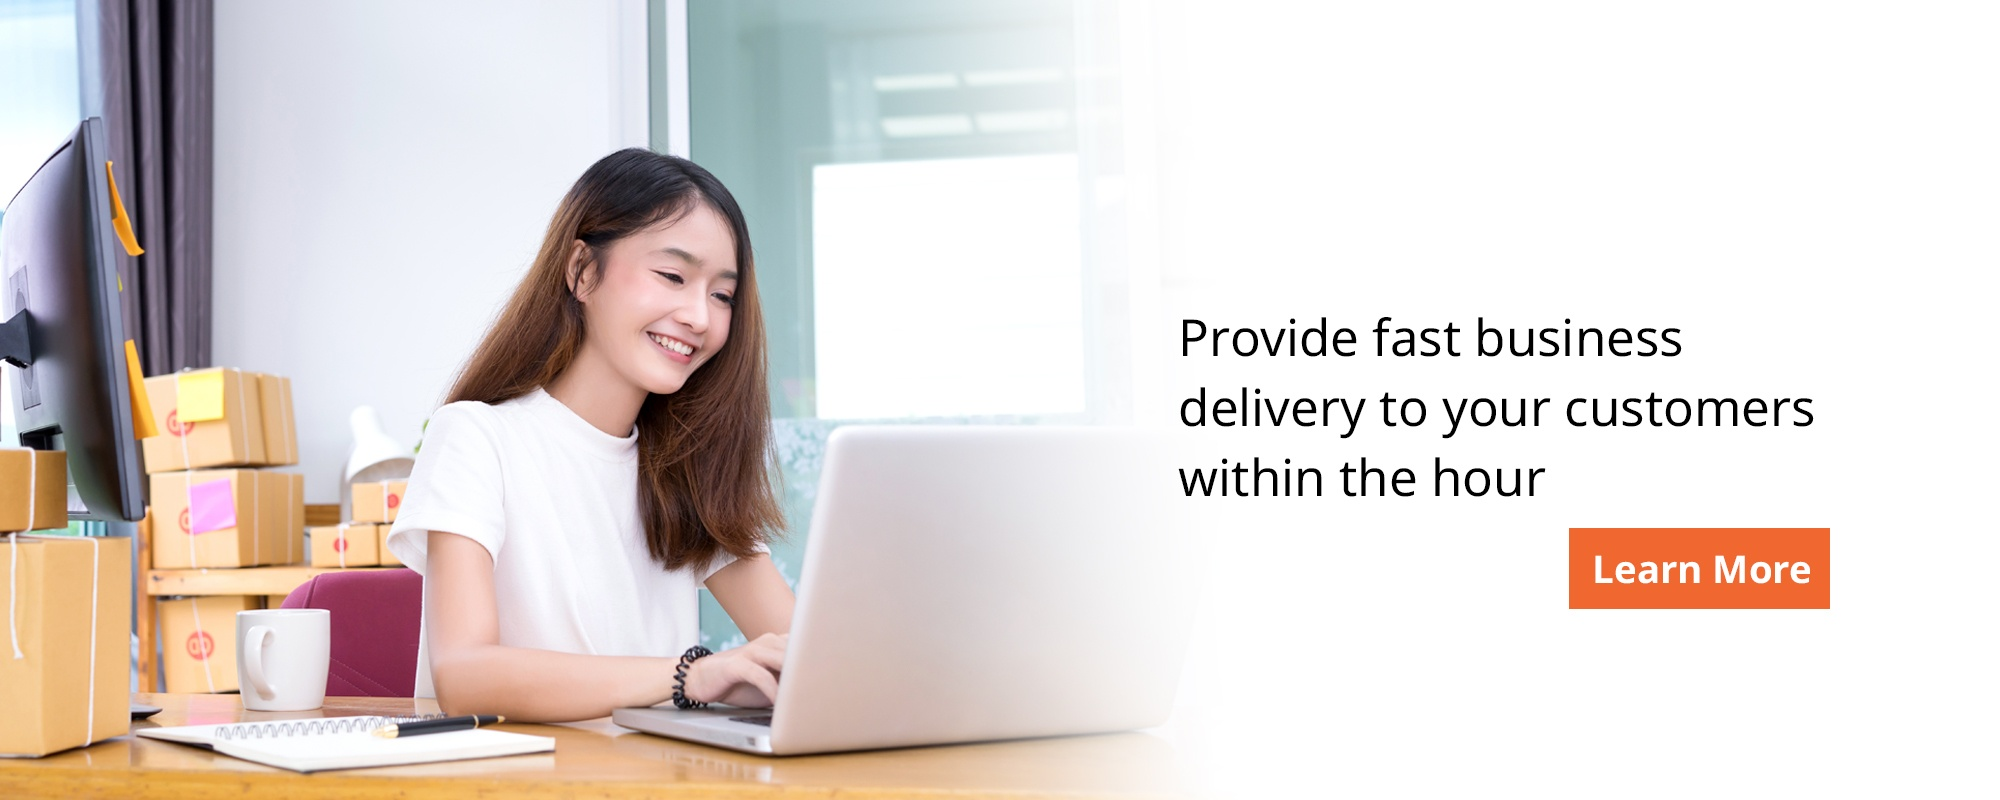 Provide fast business delivery to your customers within the hour